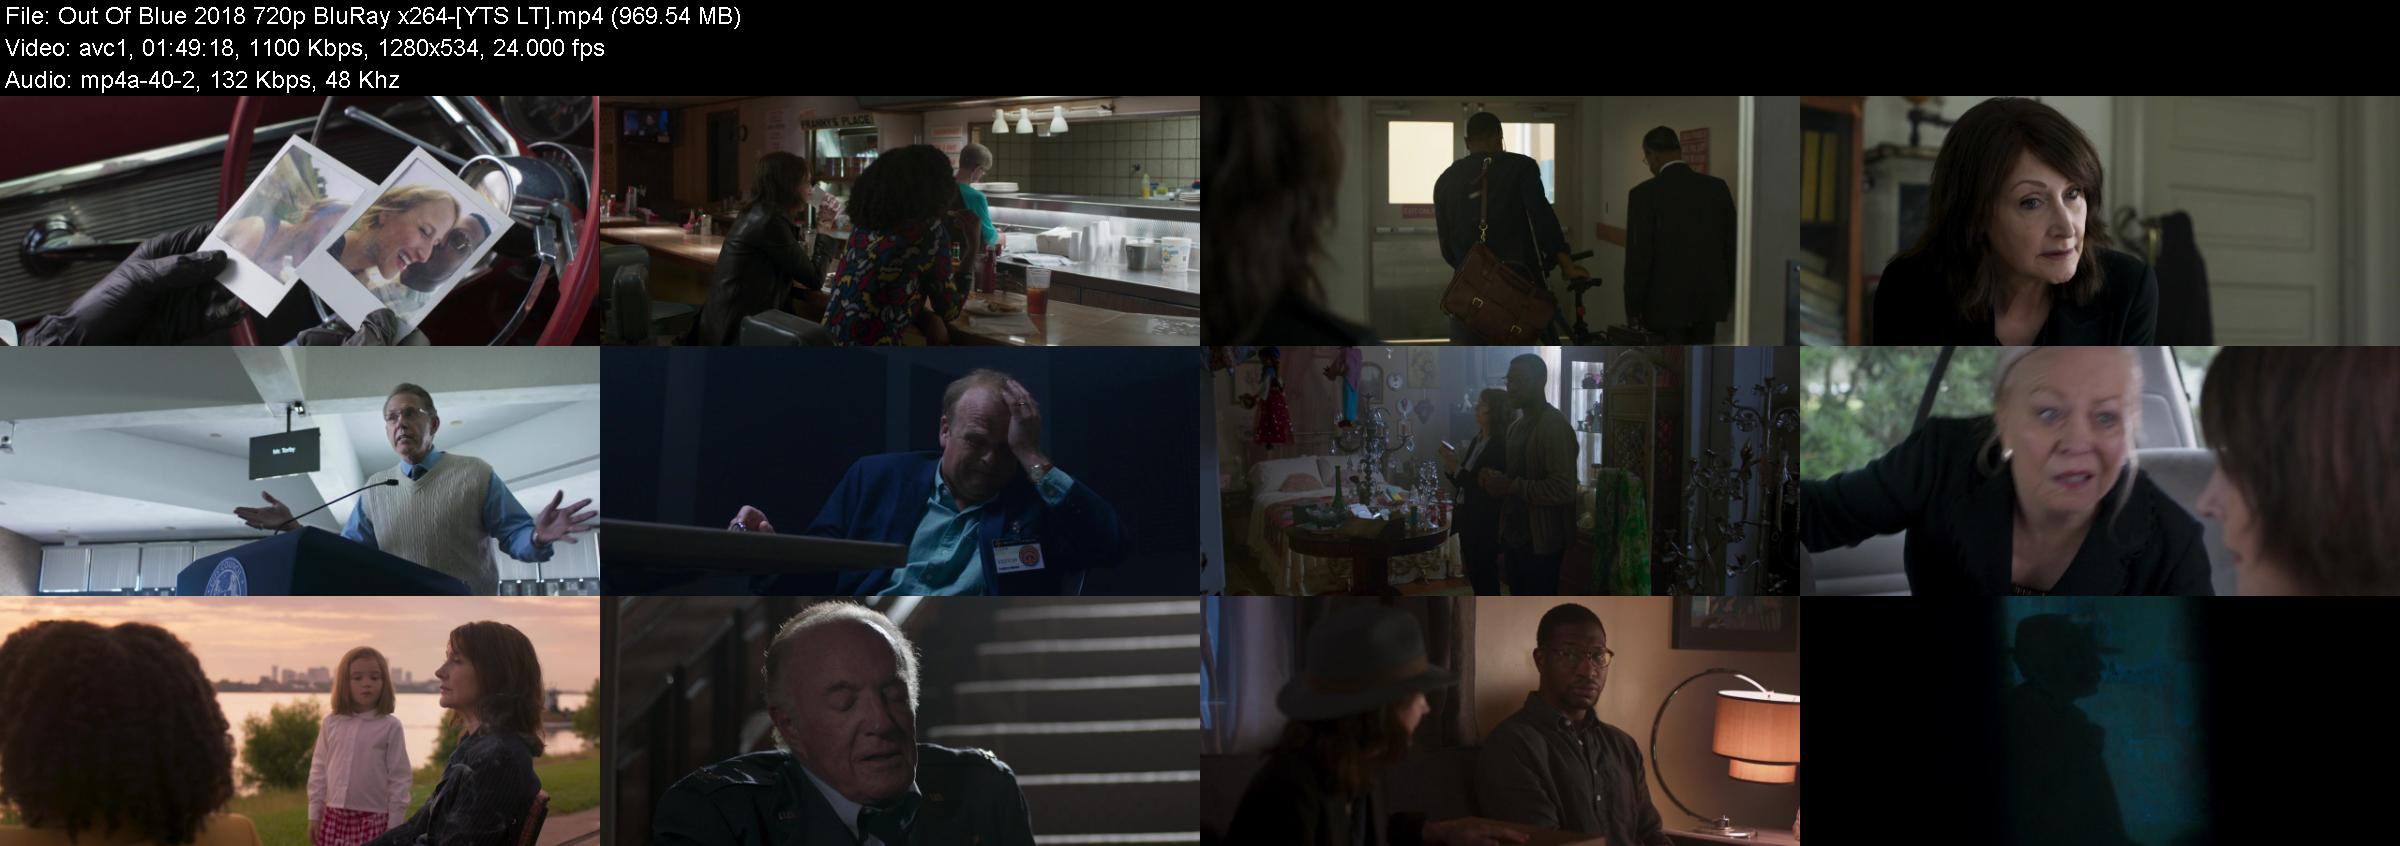 Out Of Blue (2018) BluRay 720p YIFY